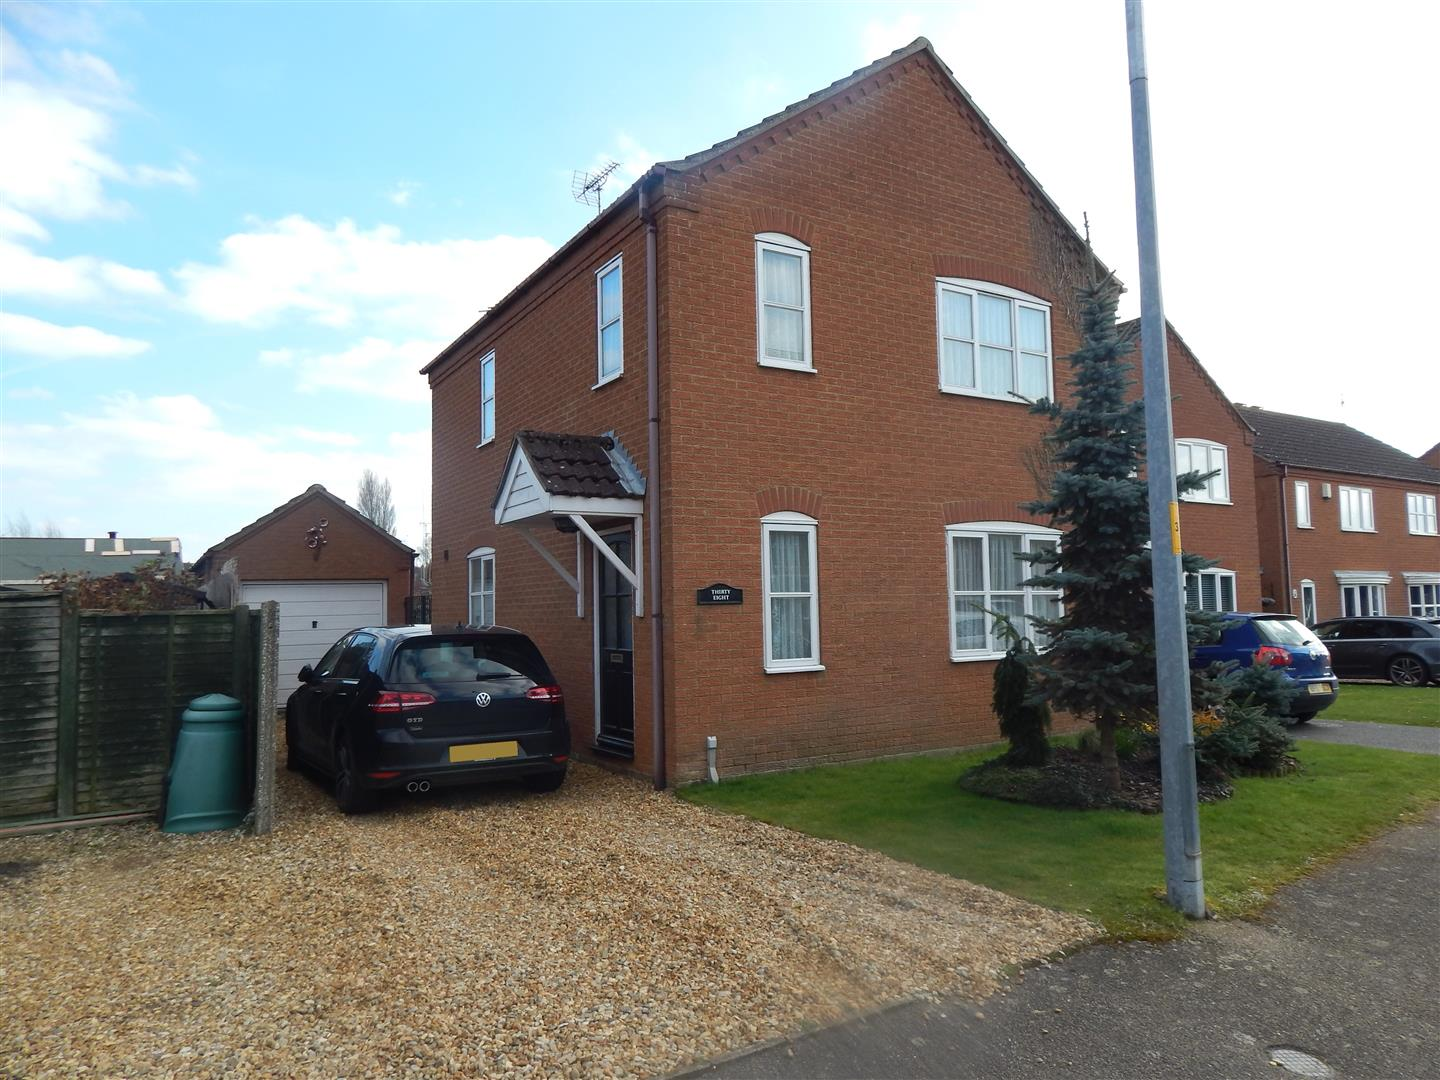 3 bed detached house for sale in Wallace Twite Way, King's Lynn 0